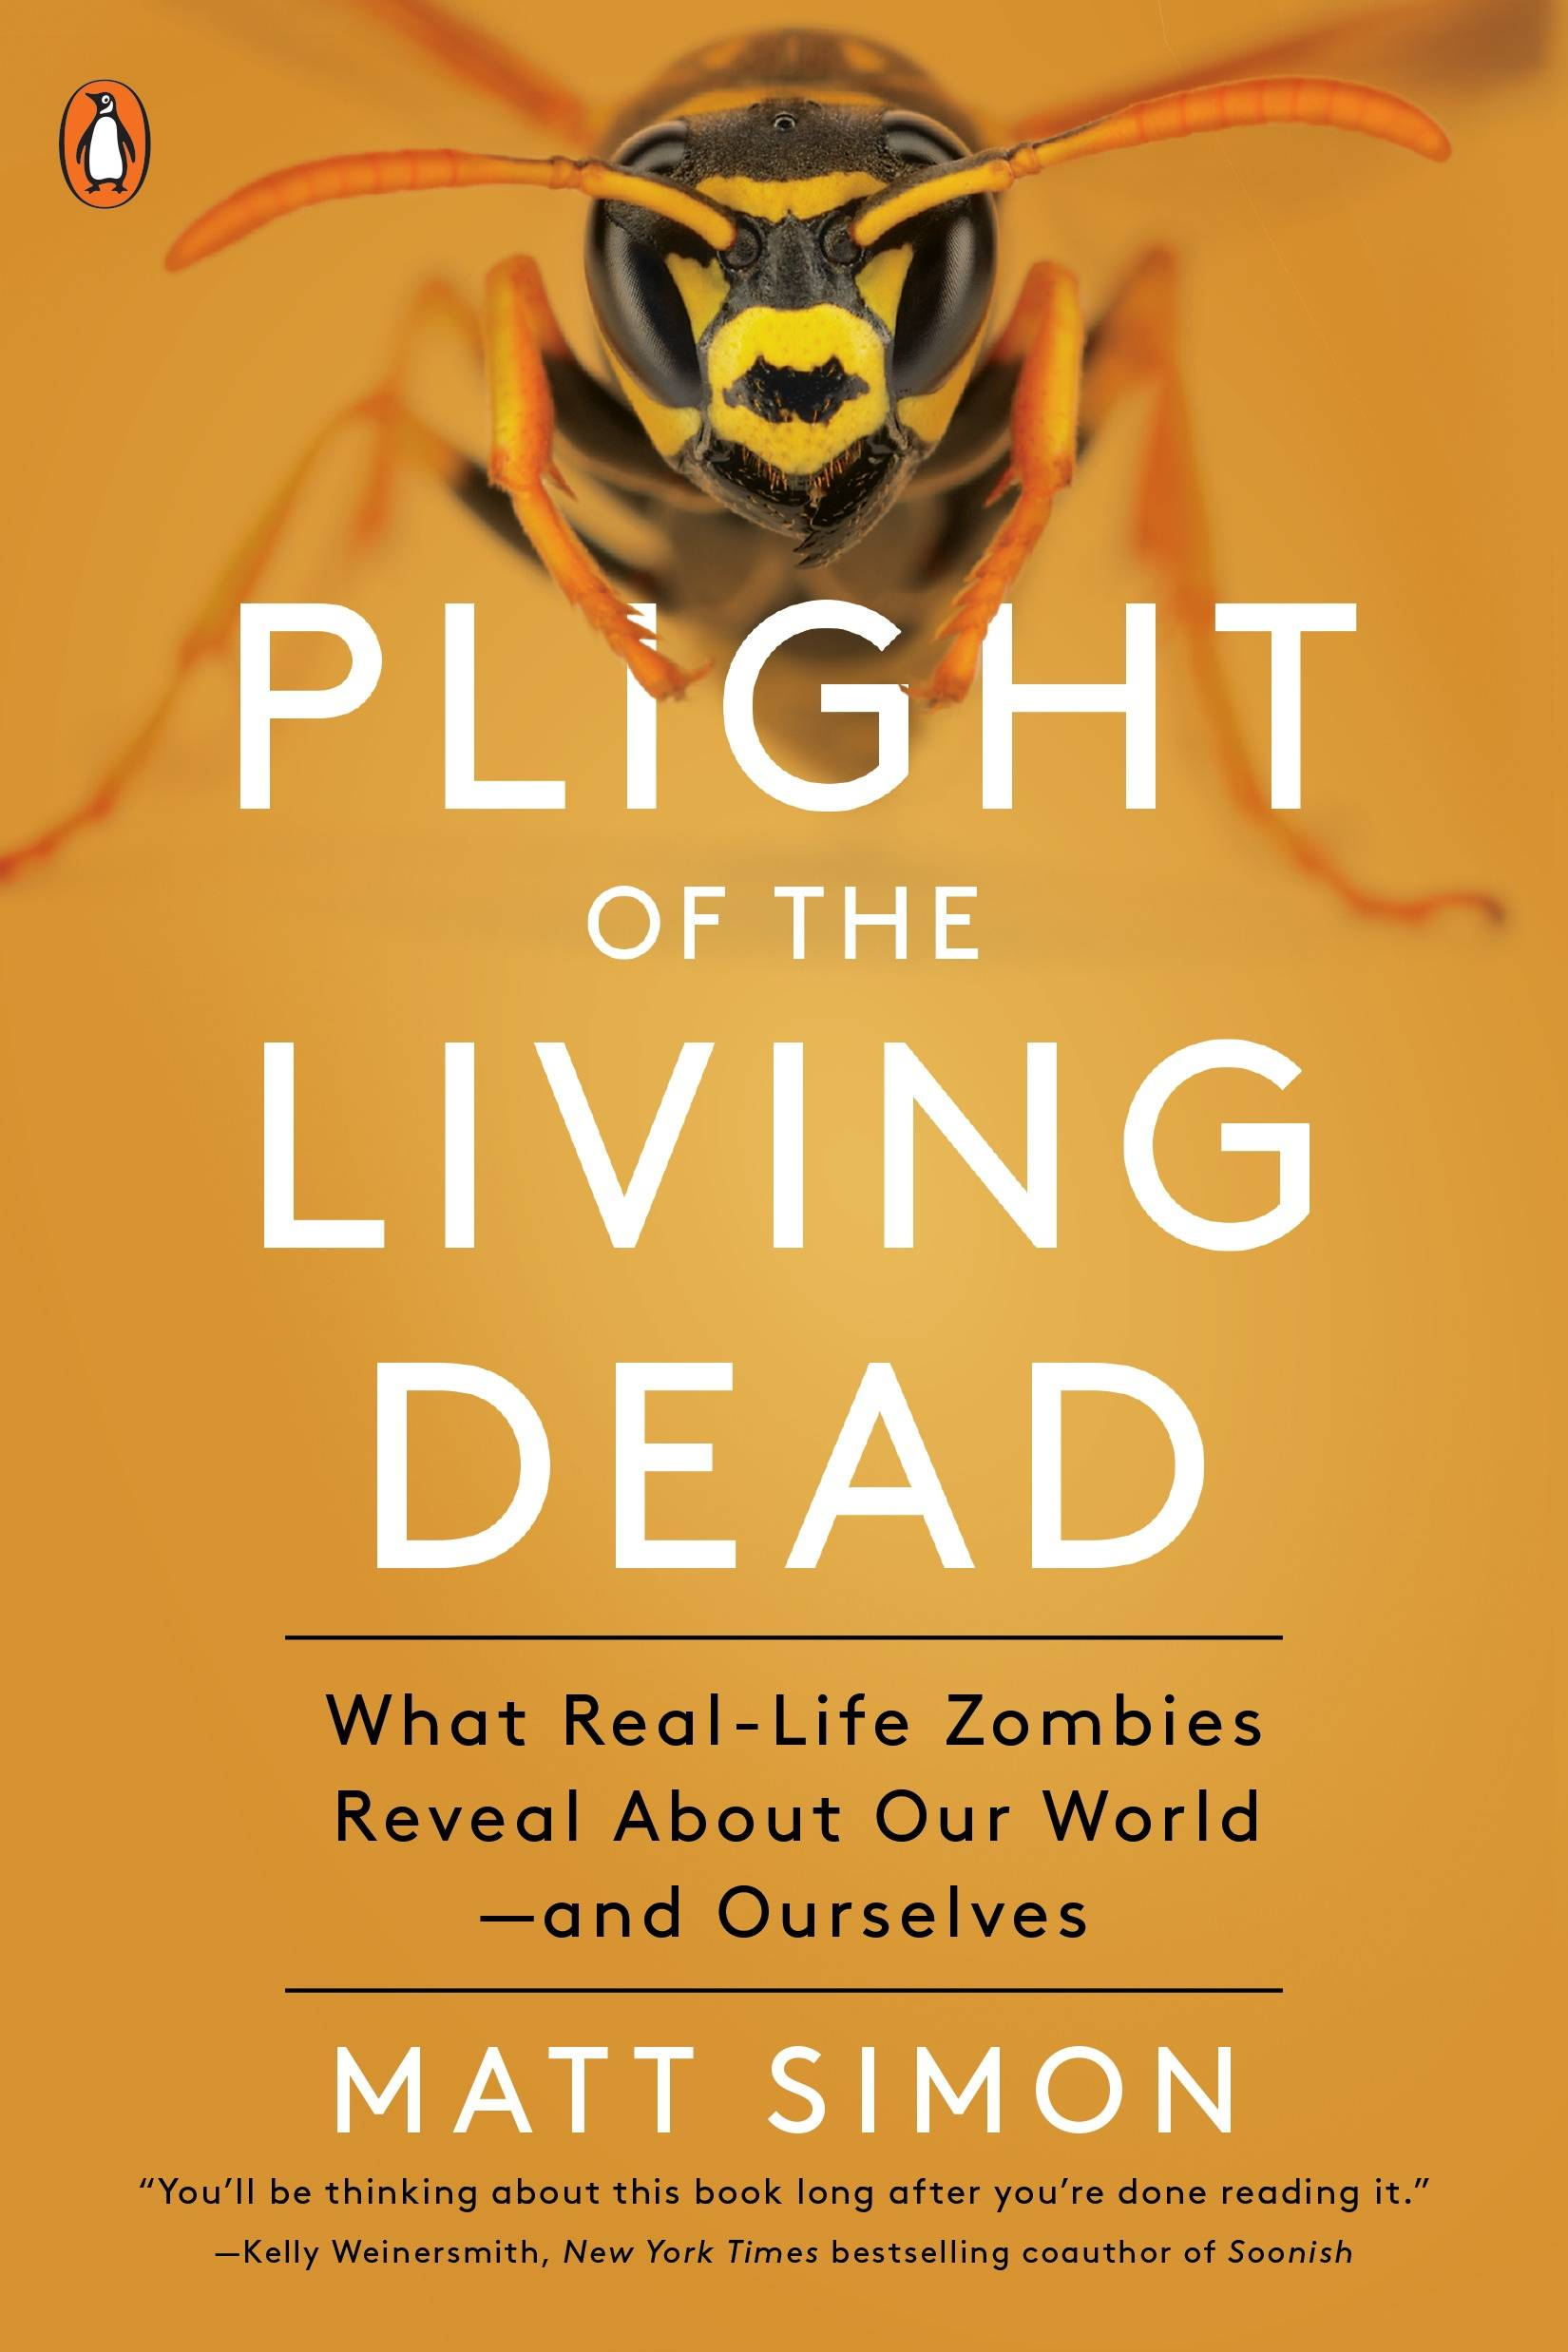 Bookworm Sez: 'Plight of the Living Dead' — Zombies meet science in an unsettling read